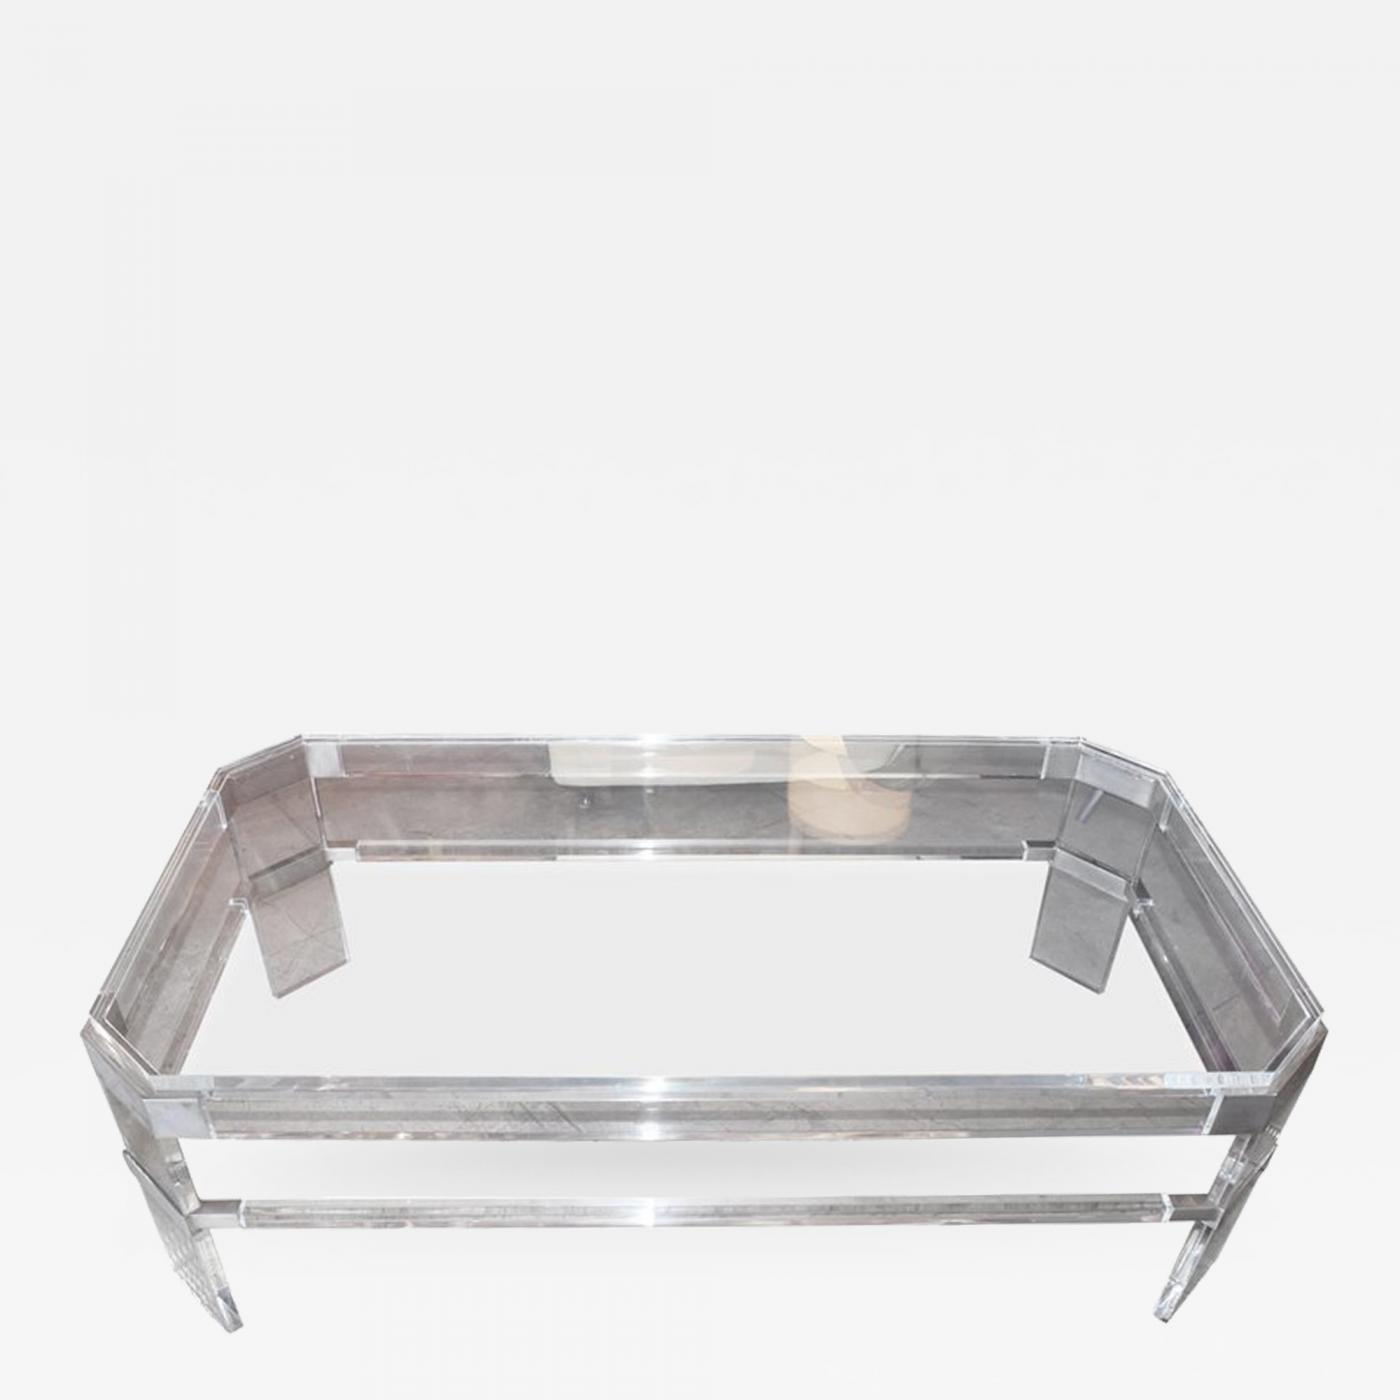 1965 Lucite Coffee Table By Charles Hollis Jones